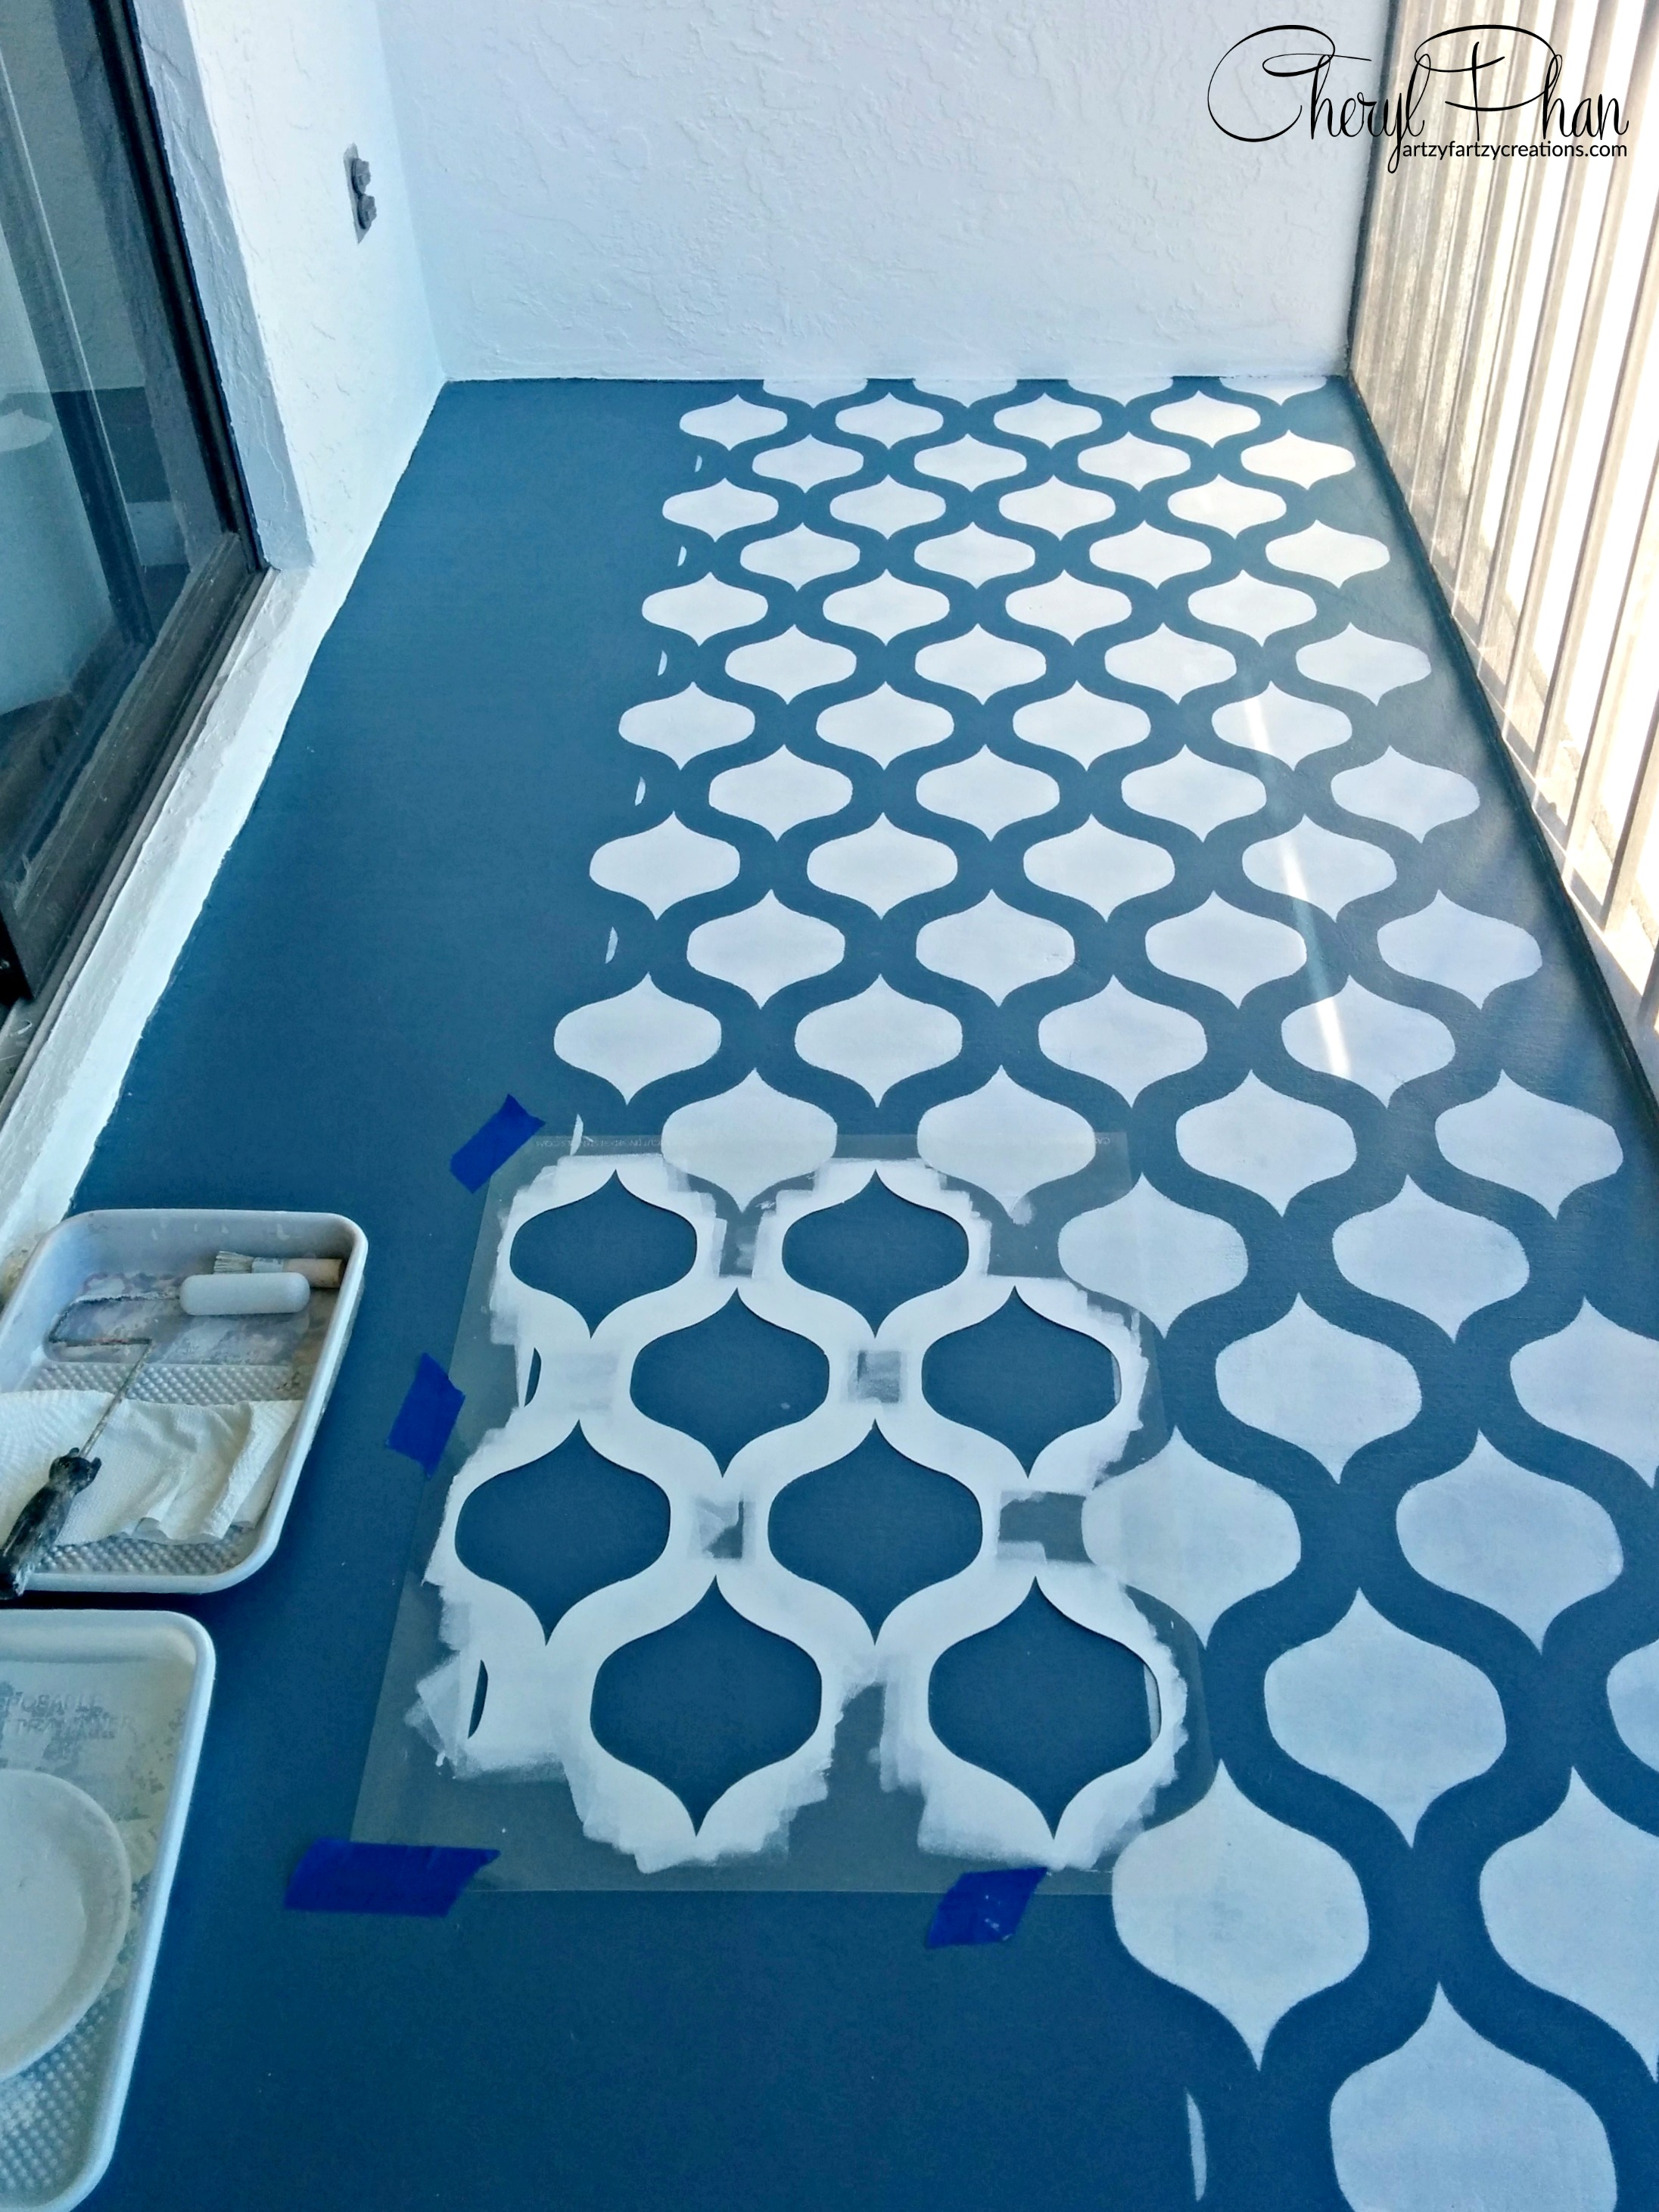 Painted and Stenciled Floor | Cheryl Phan of artzyfartzycreations.com